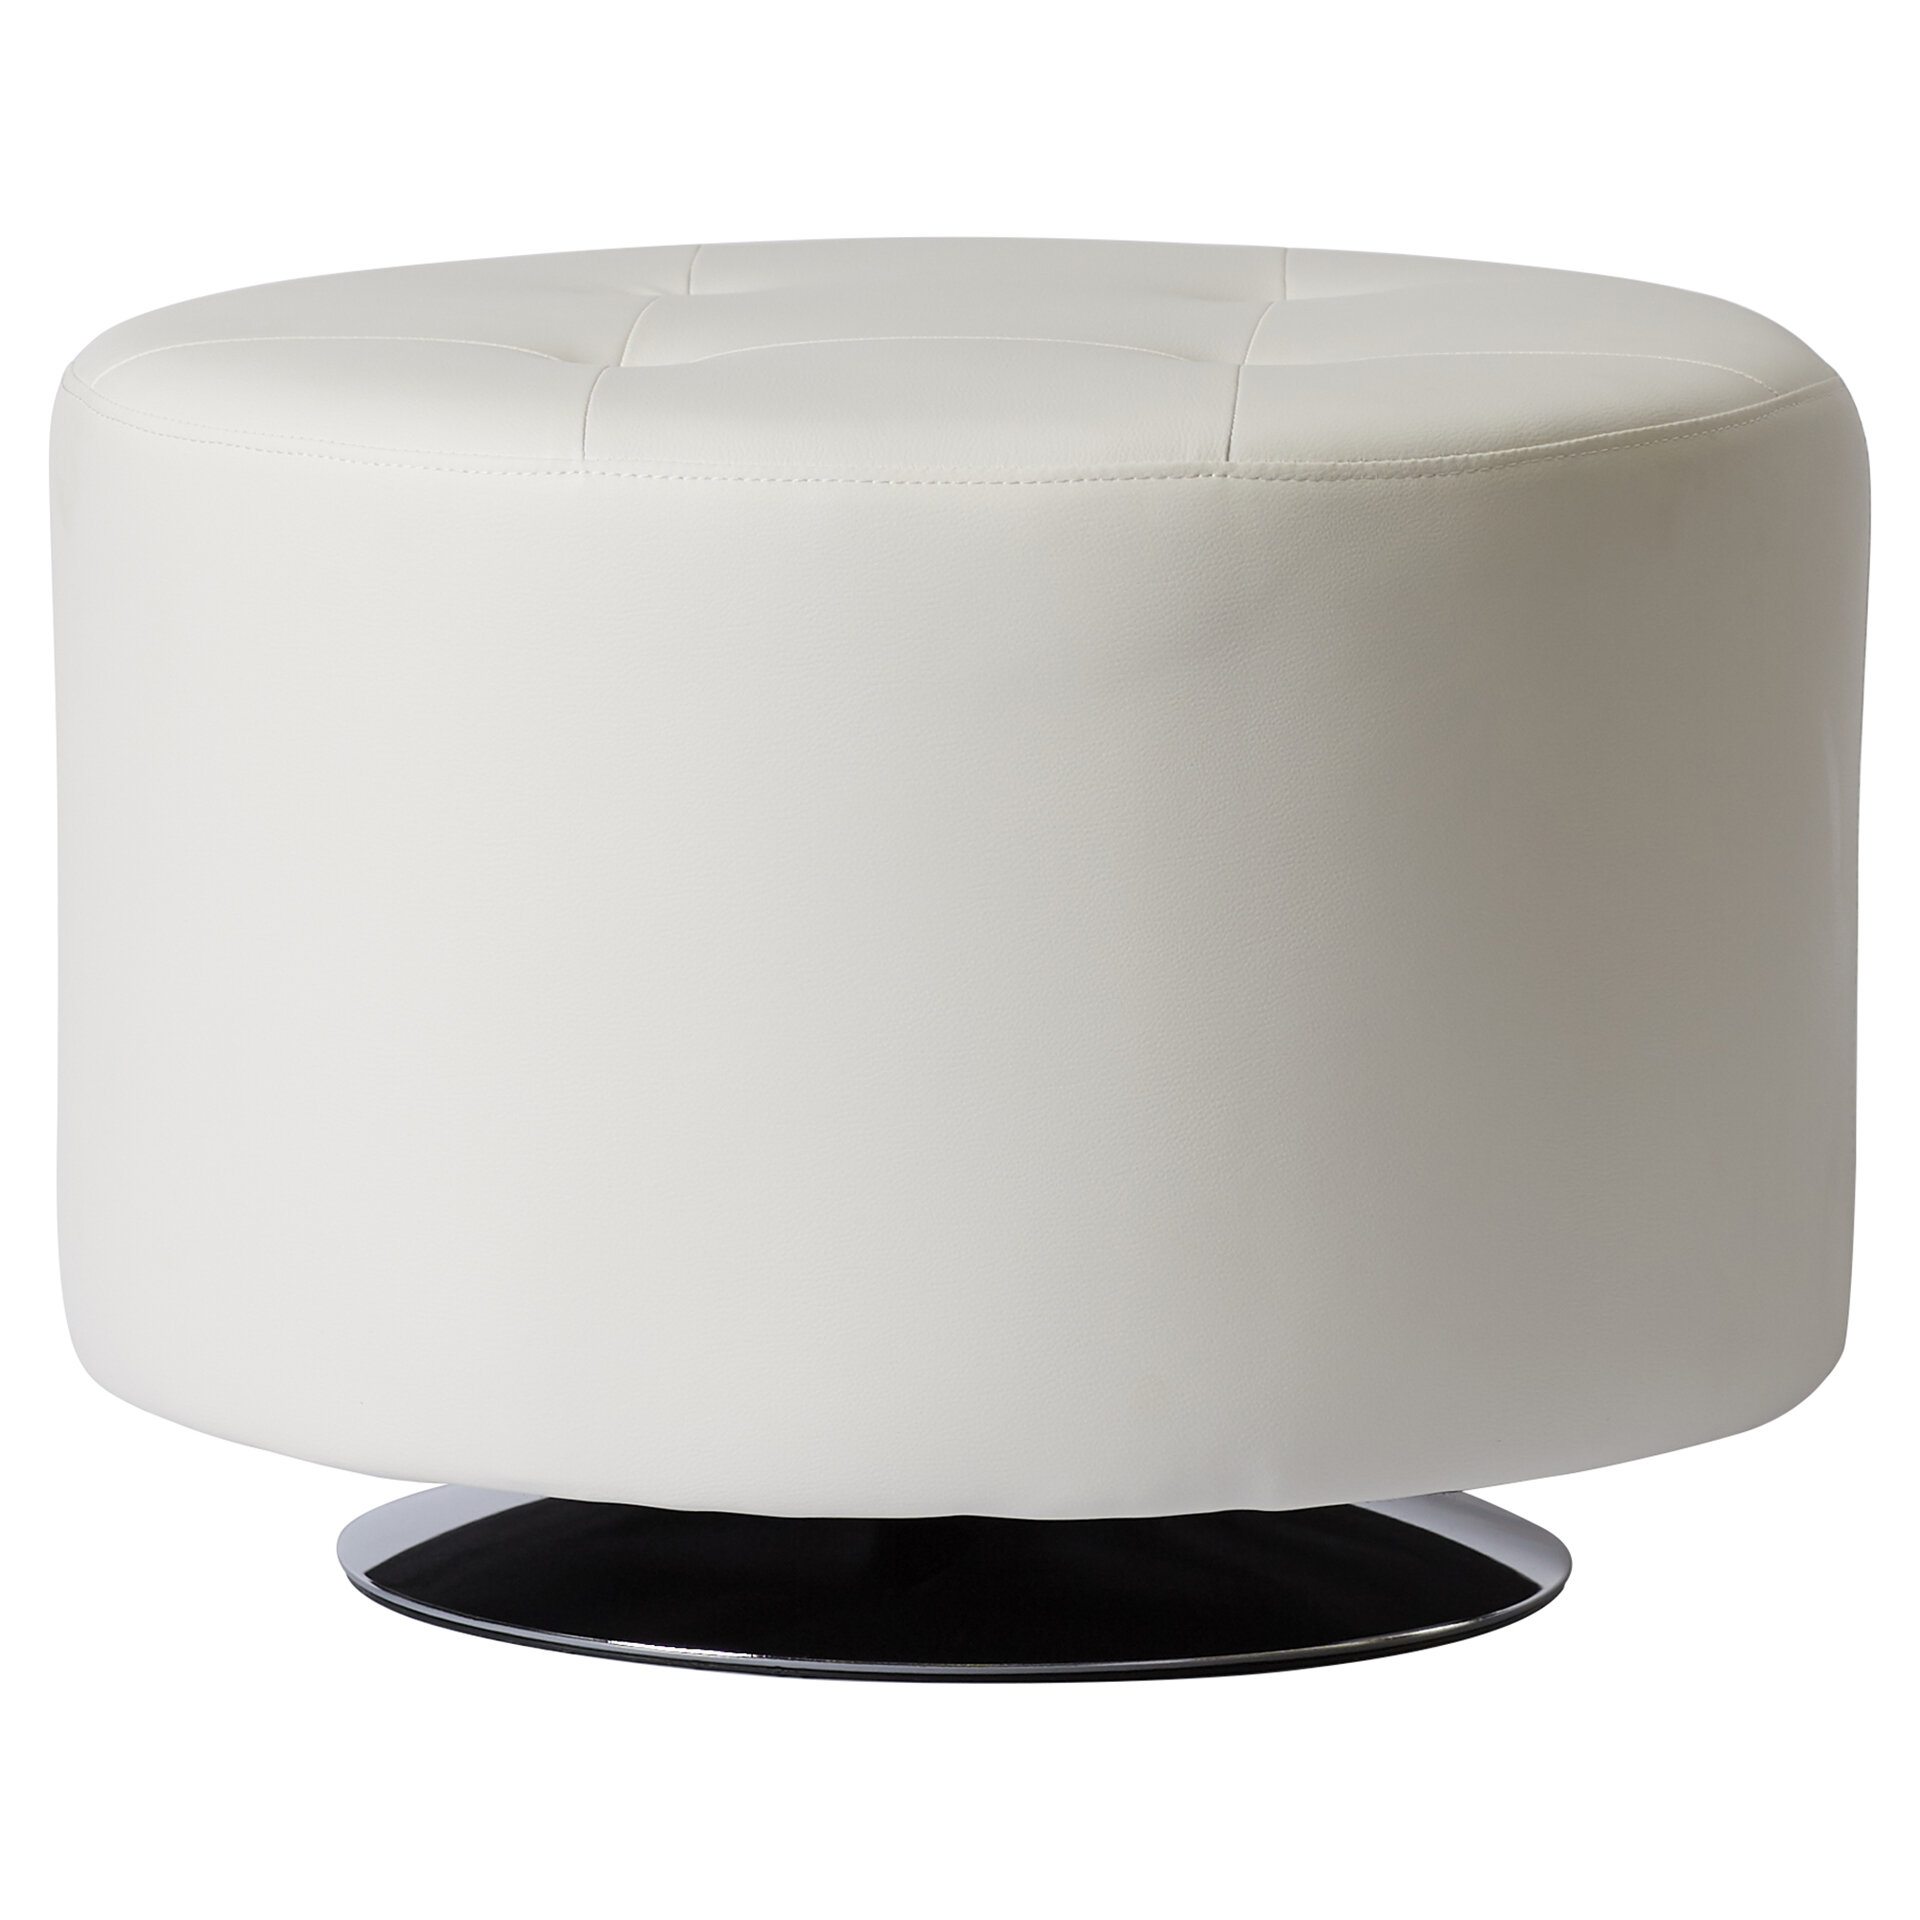 Swell Capitol Domani Tufted Ottoman Bralicious Painted Fabric Chair Ideas Braliciousco